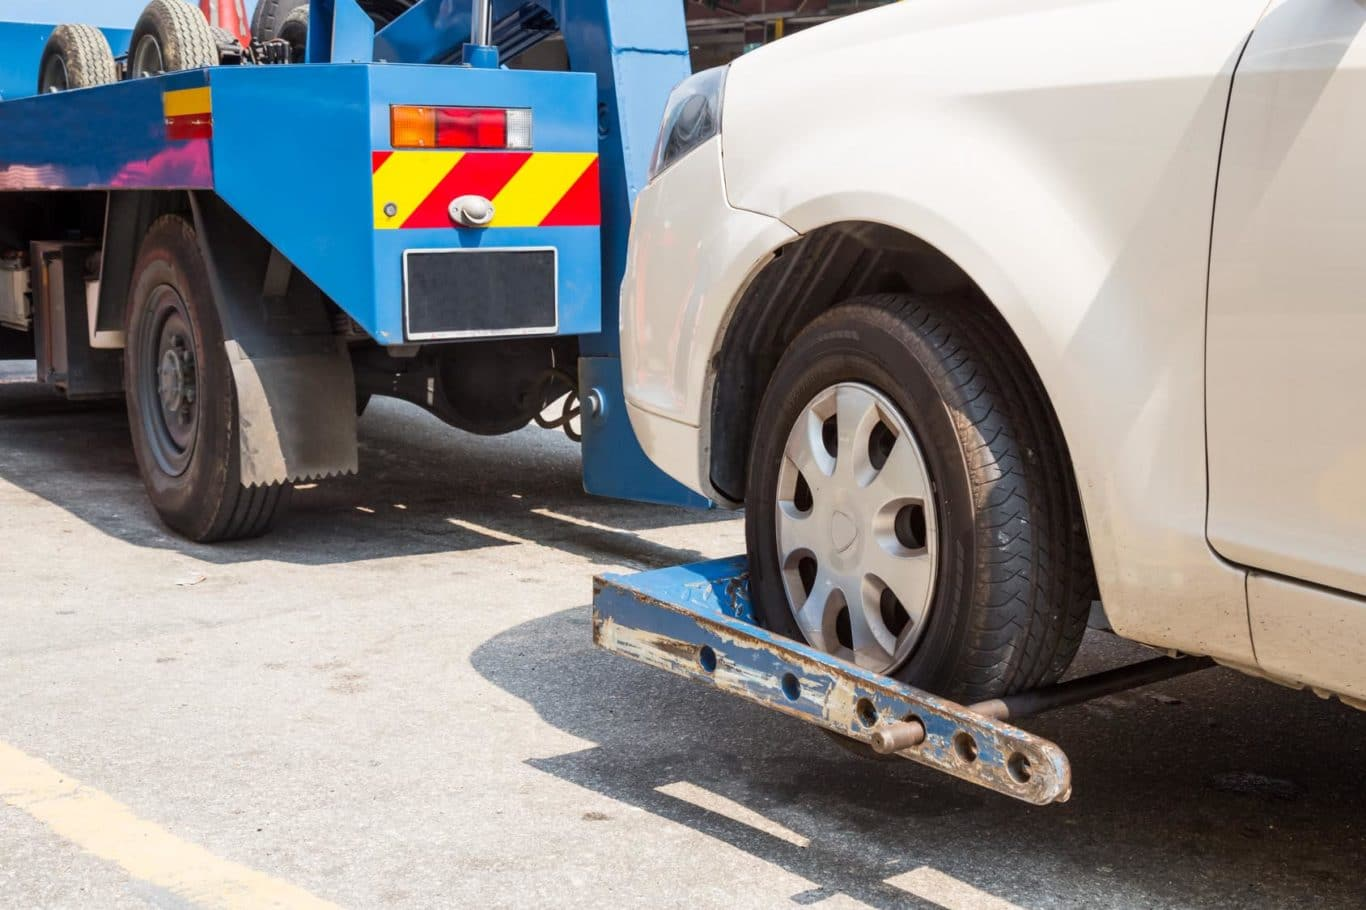 Robertstown expert Towing And Recovery Dublin services